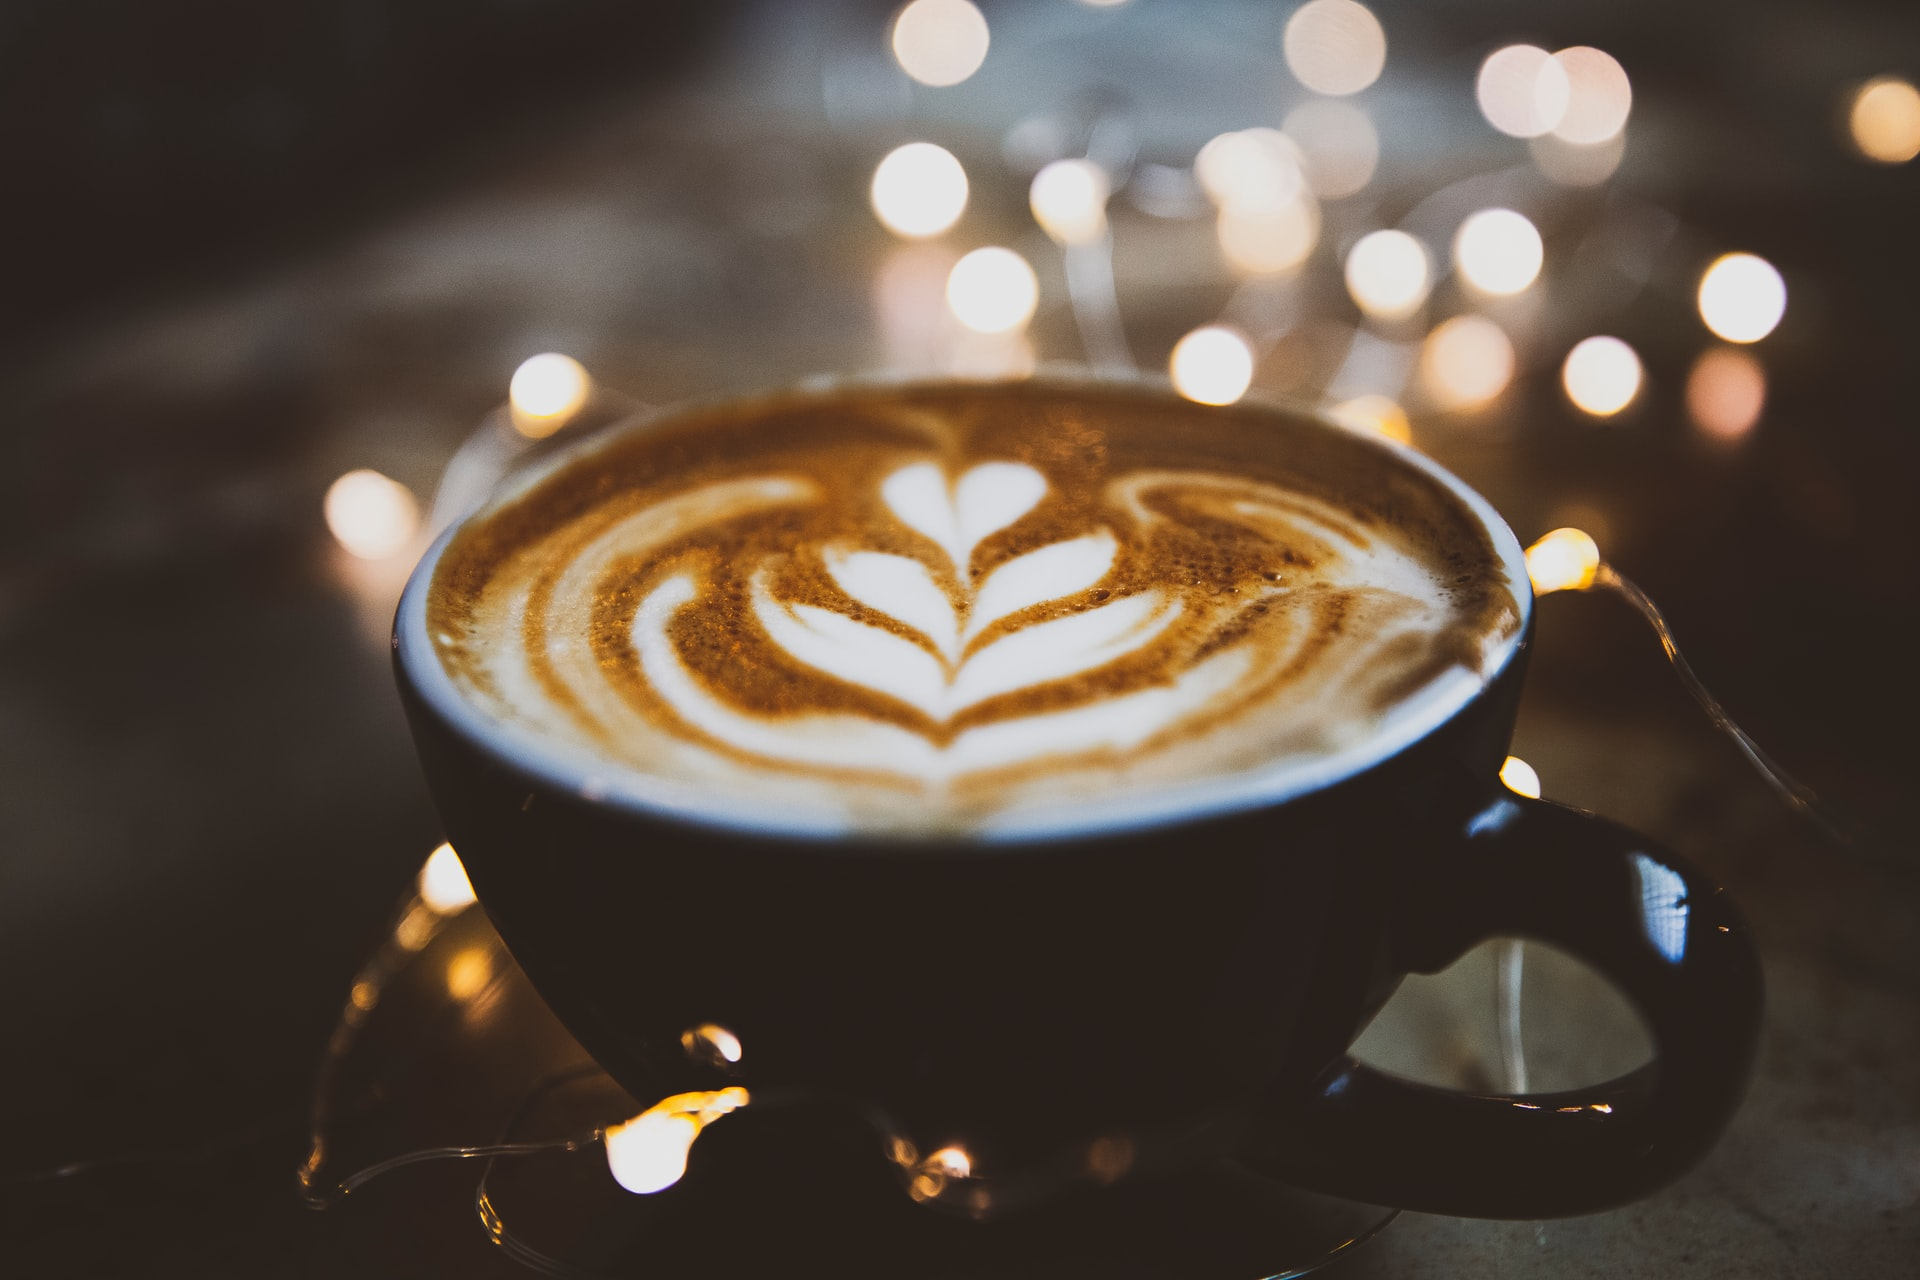 Relax & Have A Cup Of Coffee: 7 Best Cafés In Reading To Spend Your Weekend